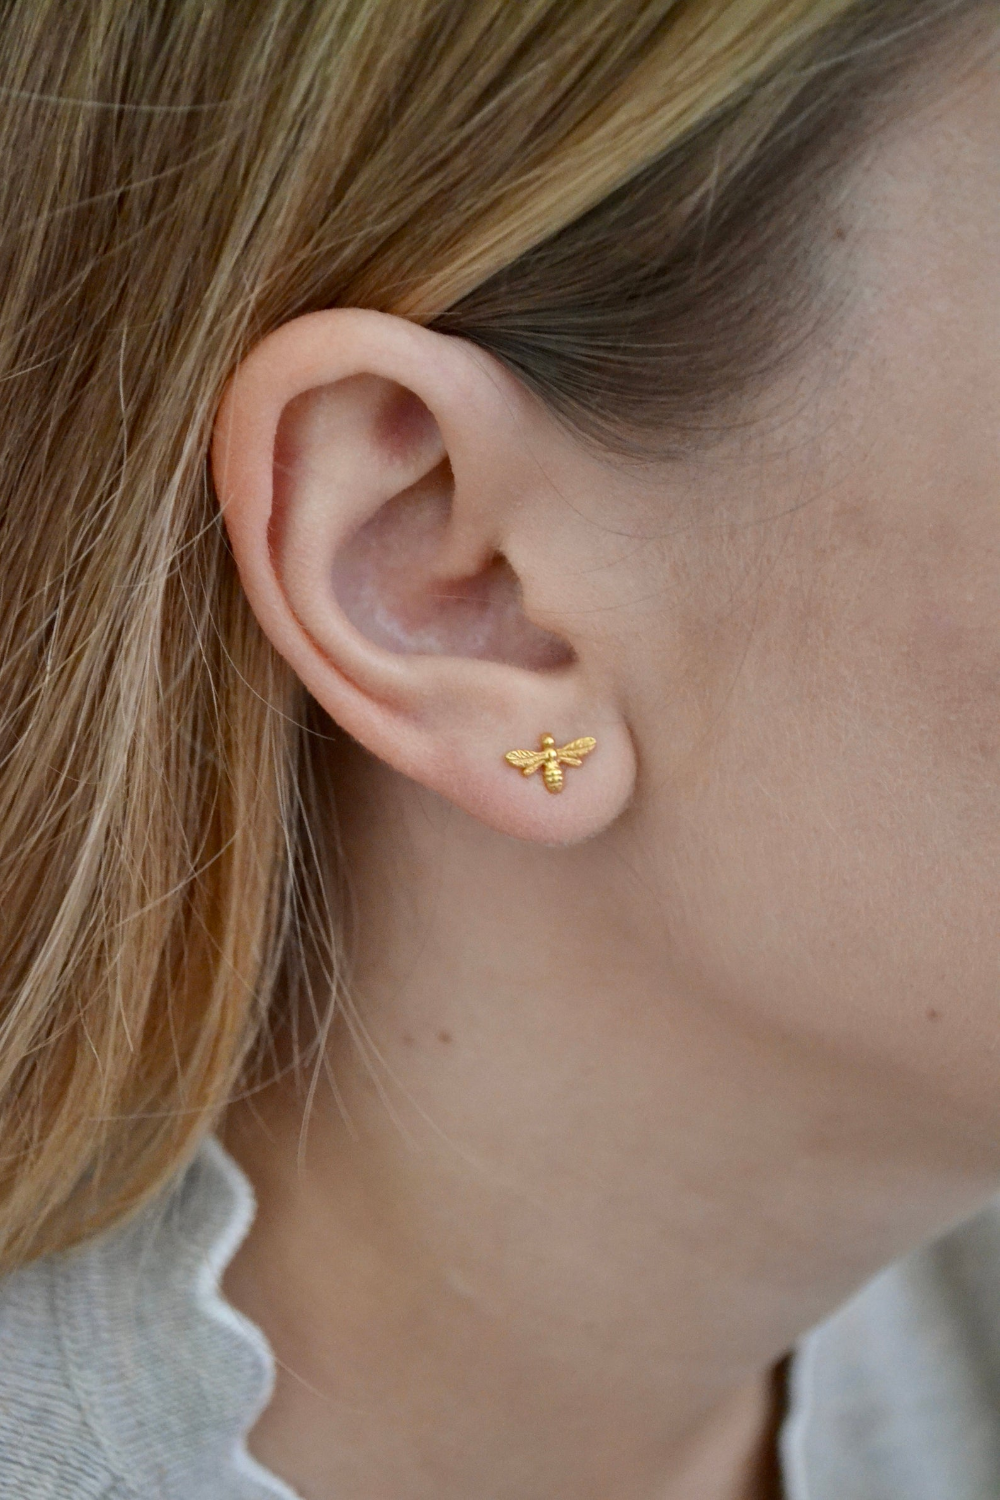 Photo of Bee earrings, tiny bee stud, dainty bumble bee lover gift, Sterling silver studs gold vermeil, insect earrings, child earrings, cute earring